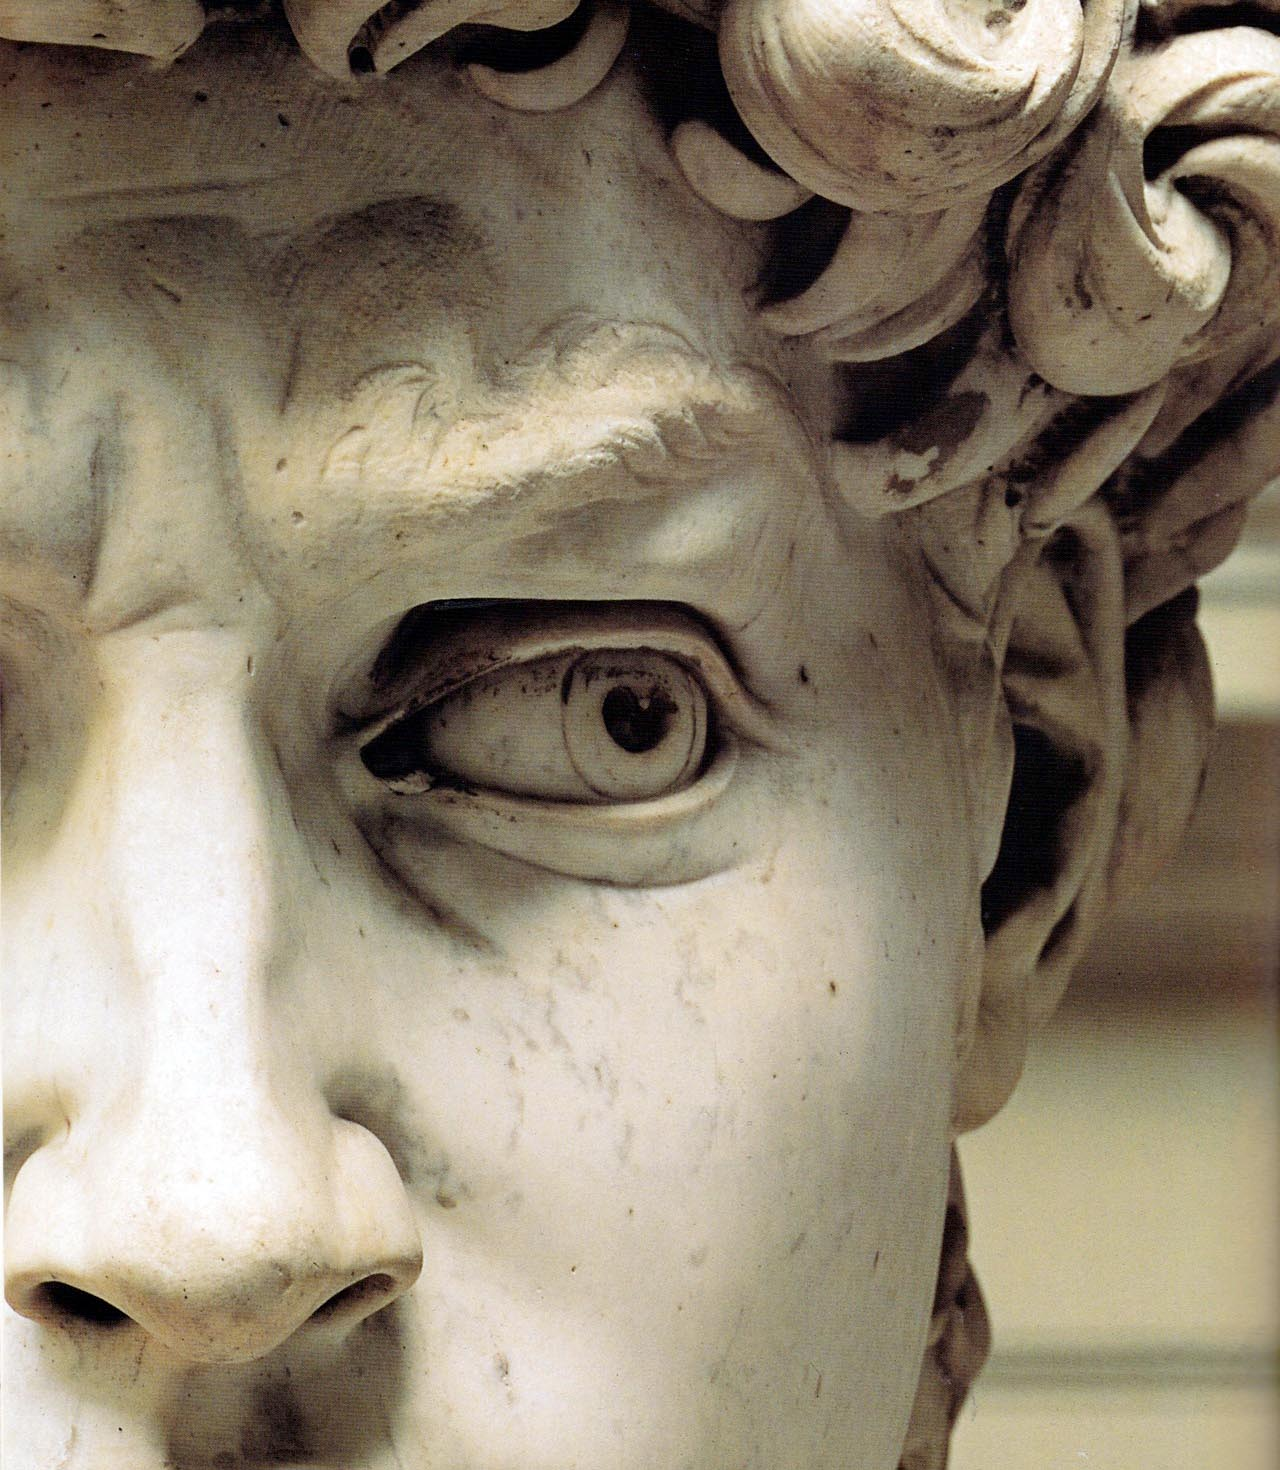 michelangelo-david-detail-face